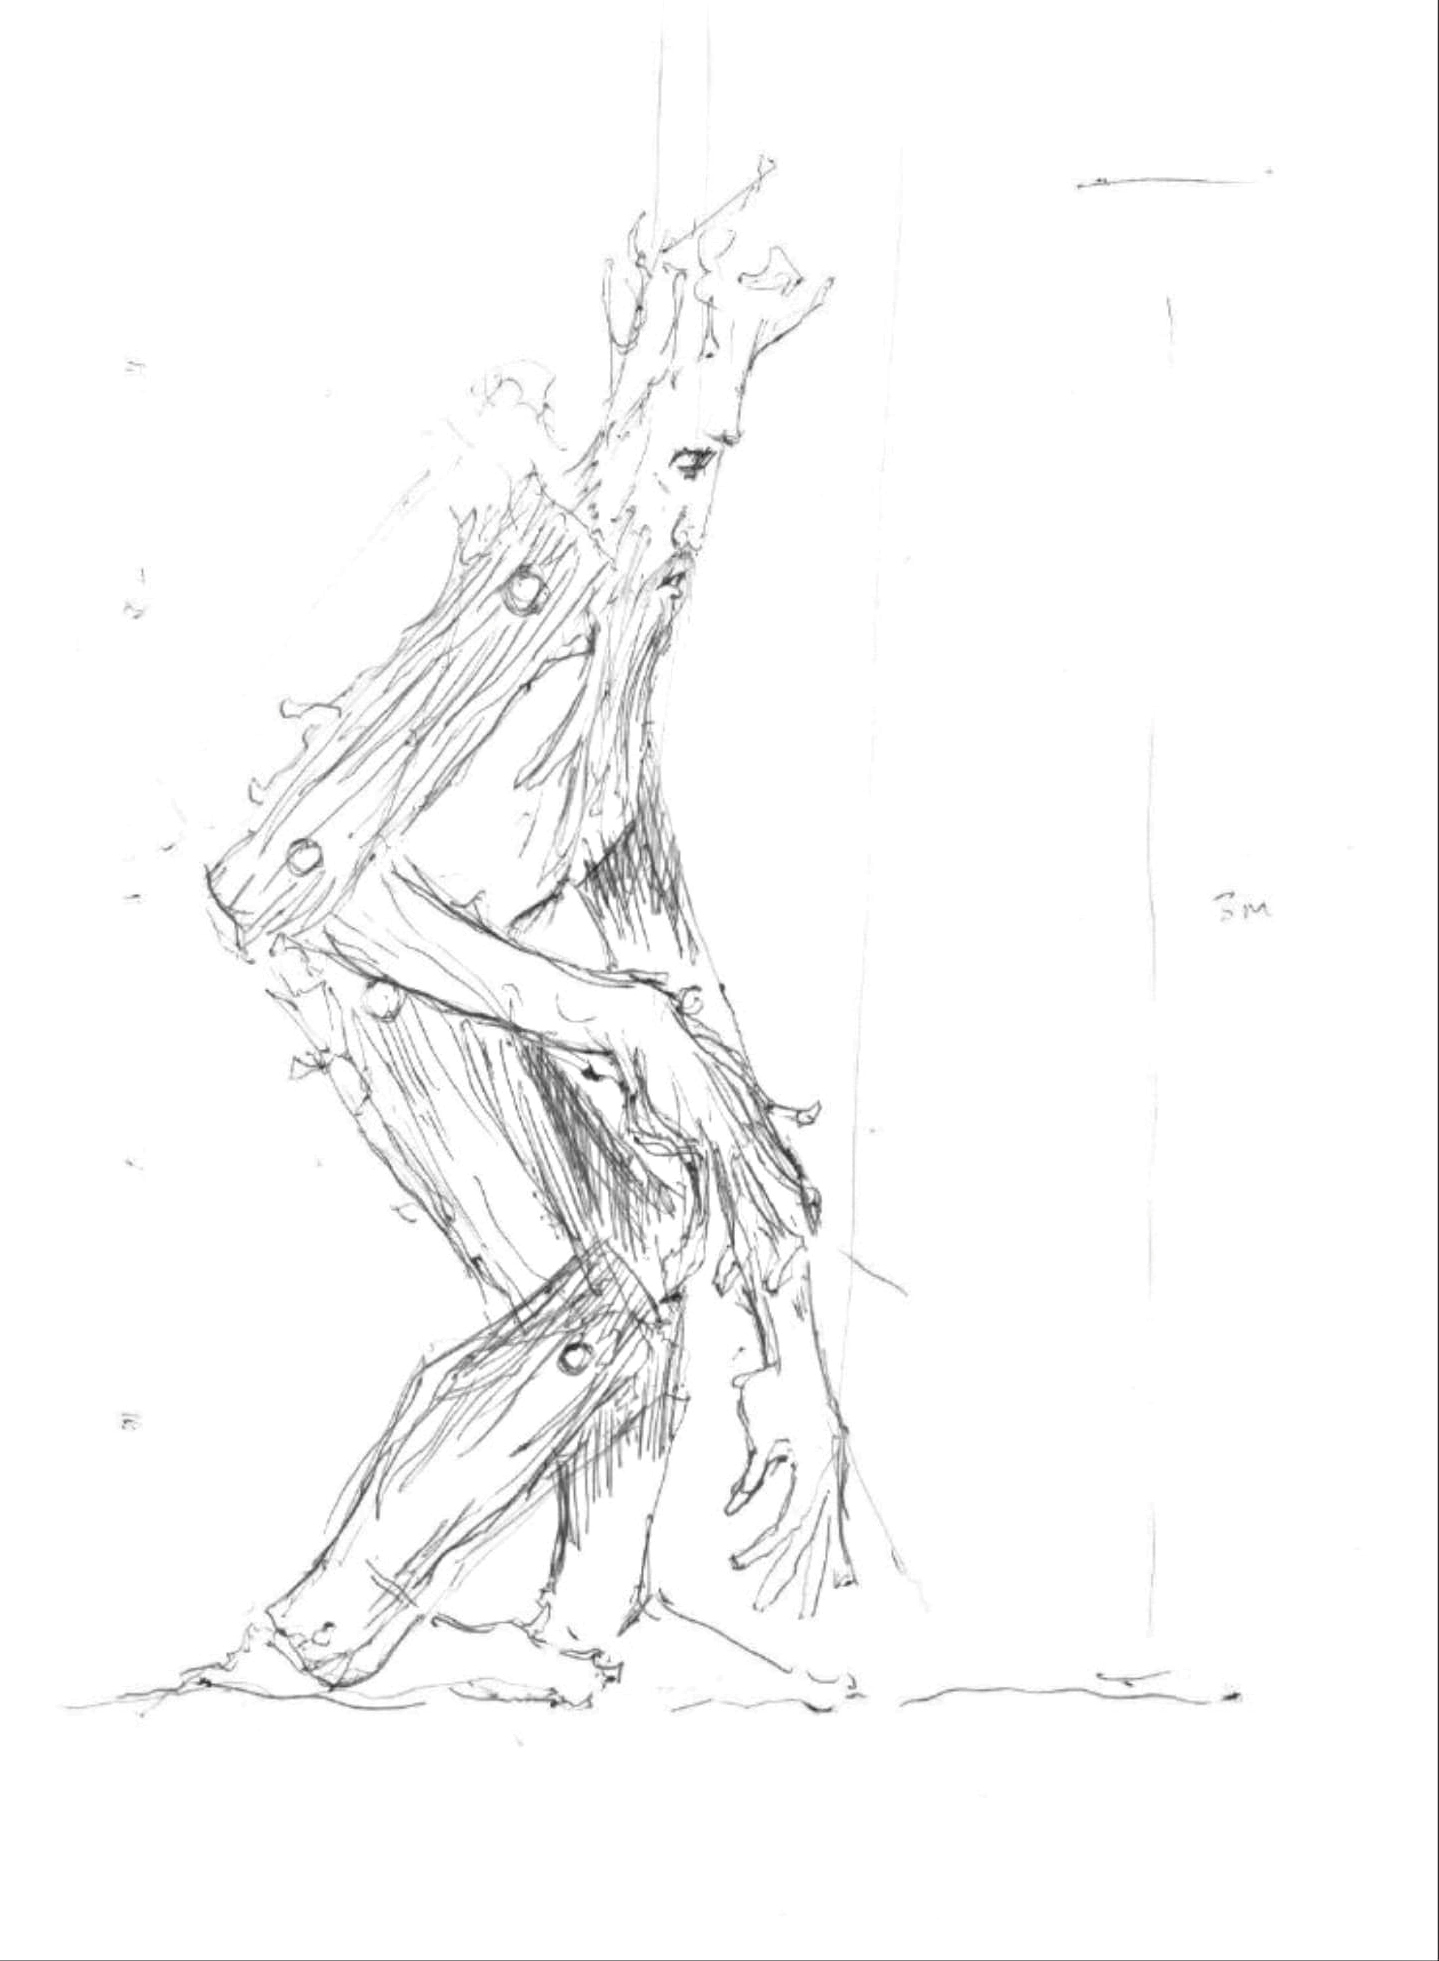 sketch of an ent by simon o'rourke.